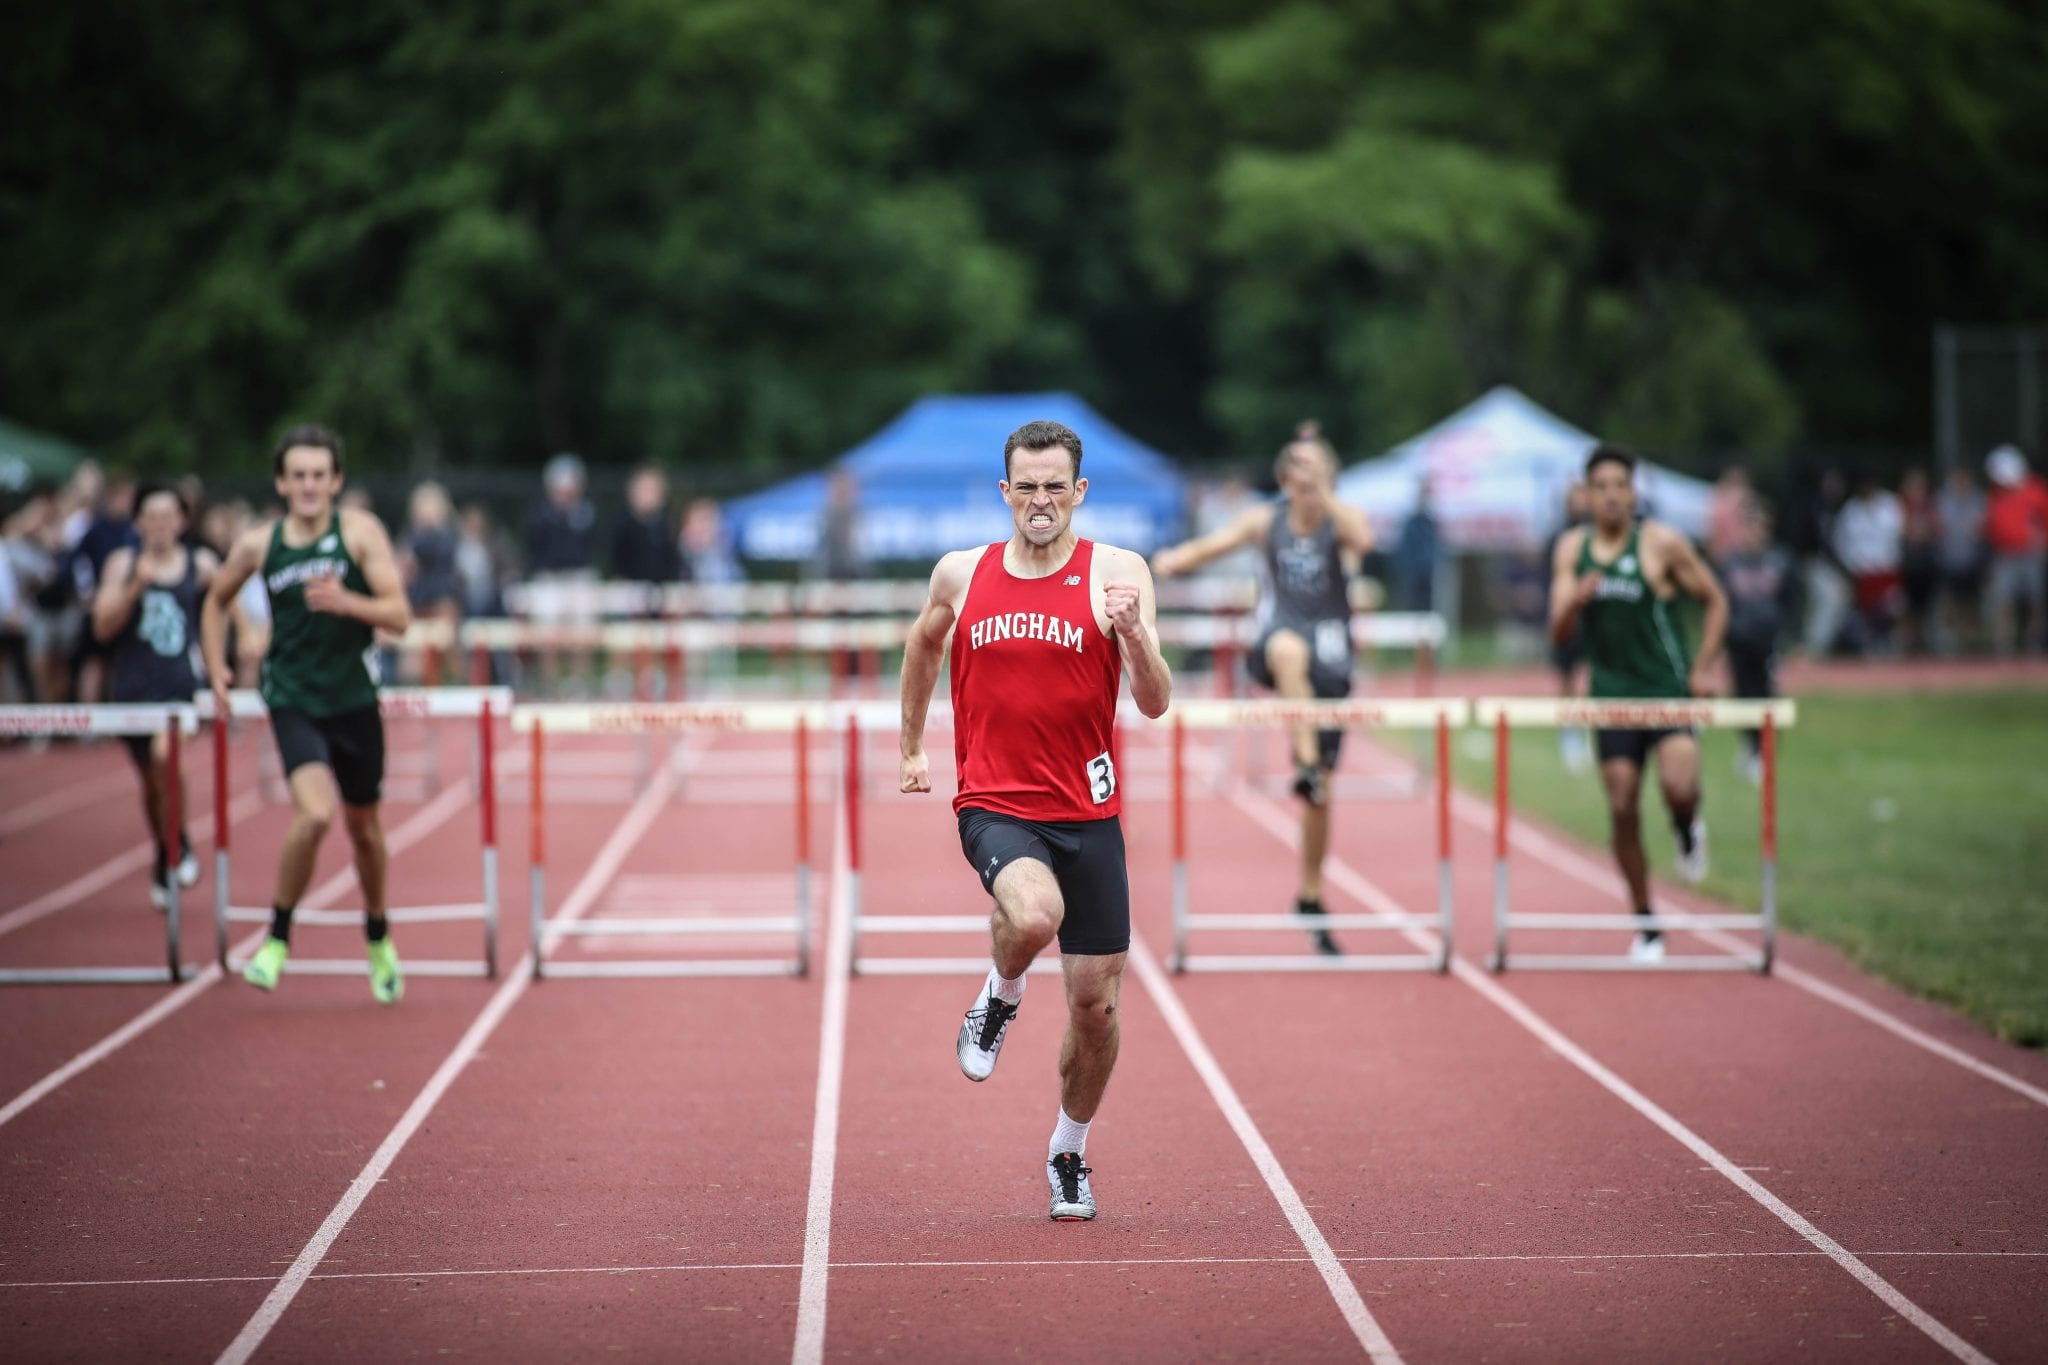 Senior captain Sean McKay pulls away from the field in the 400m hurdles.